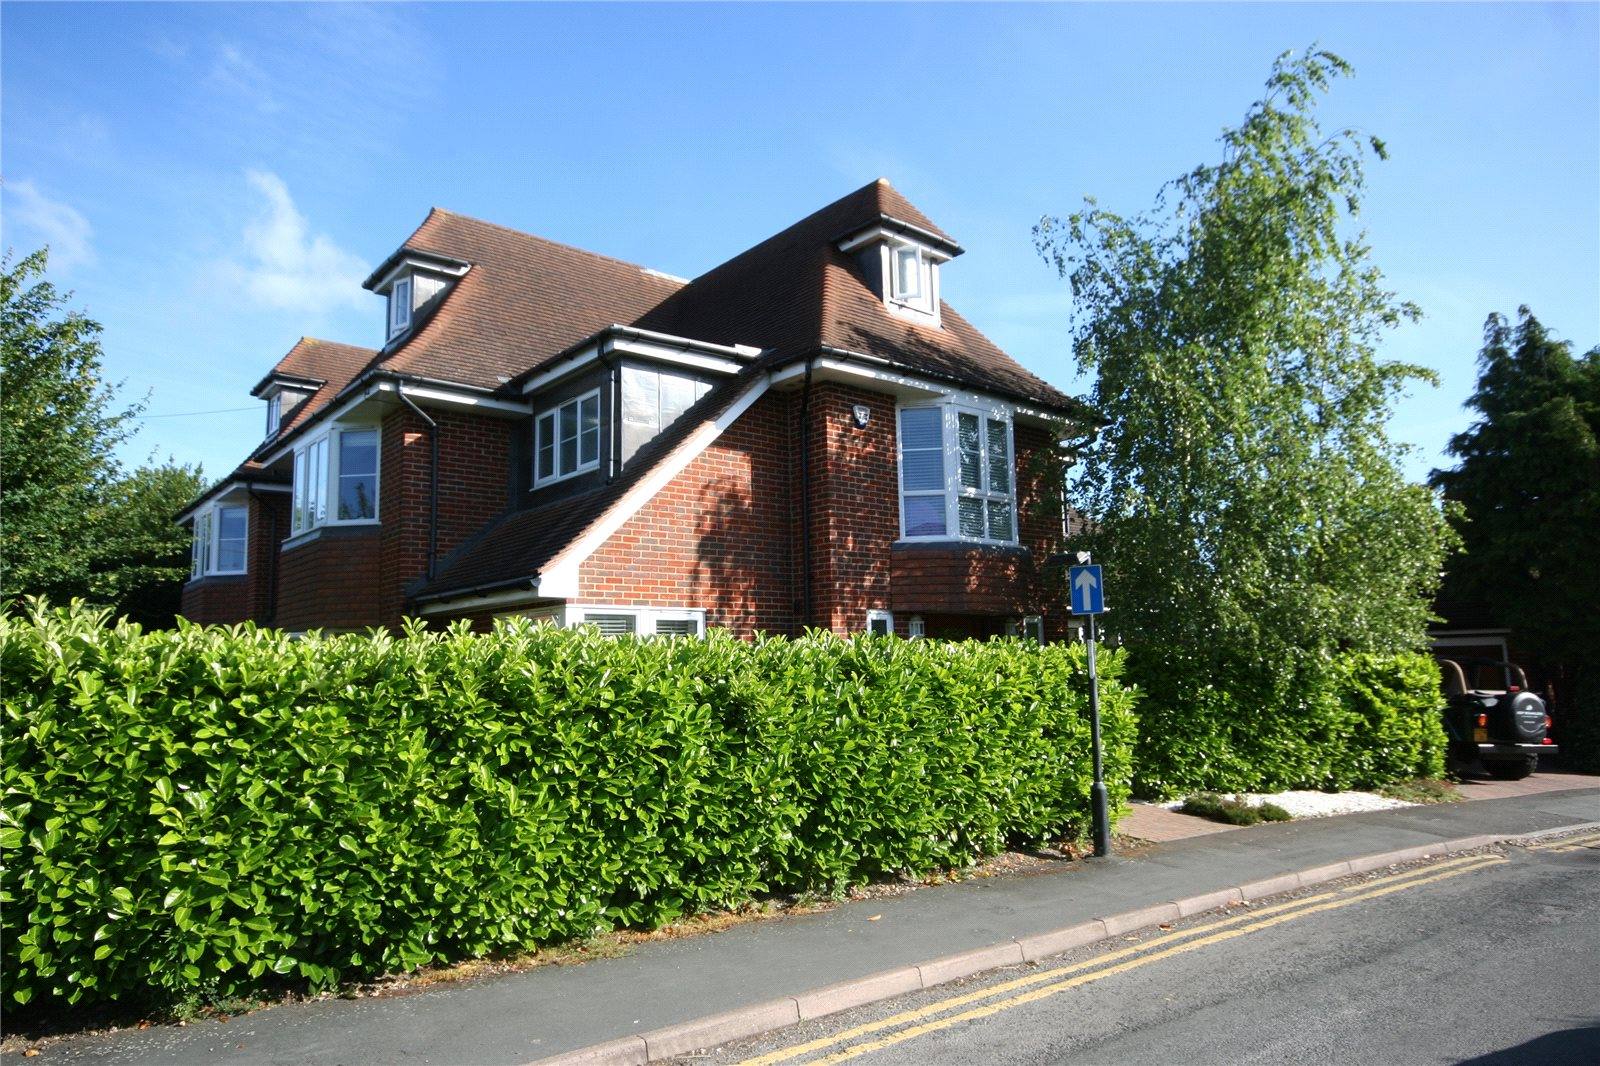 Maison unifamiliale pour l Vente à Ethorpe Crescent, Gerrards Cross, Buckinghamshire, SL9 Gerrards Cross, Angleterre